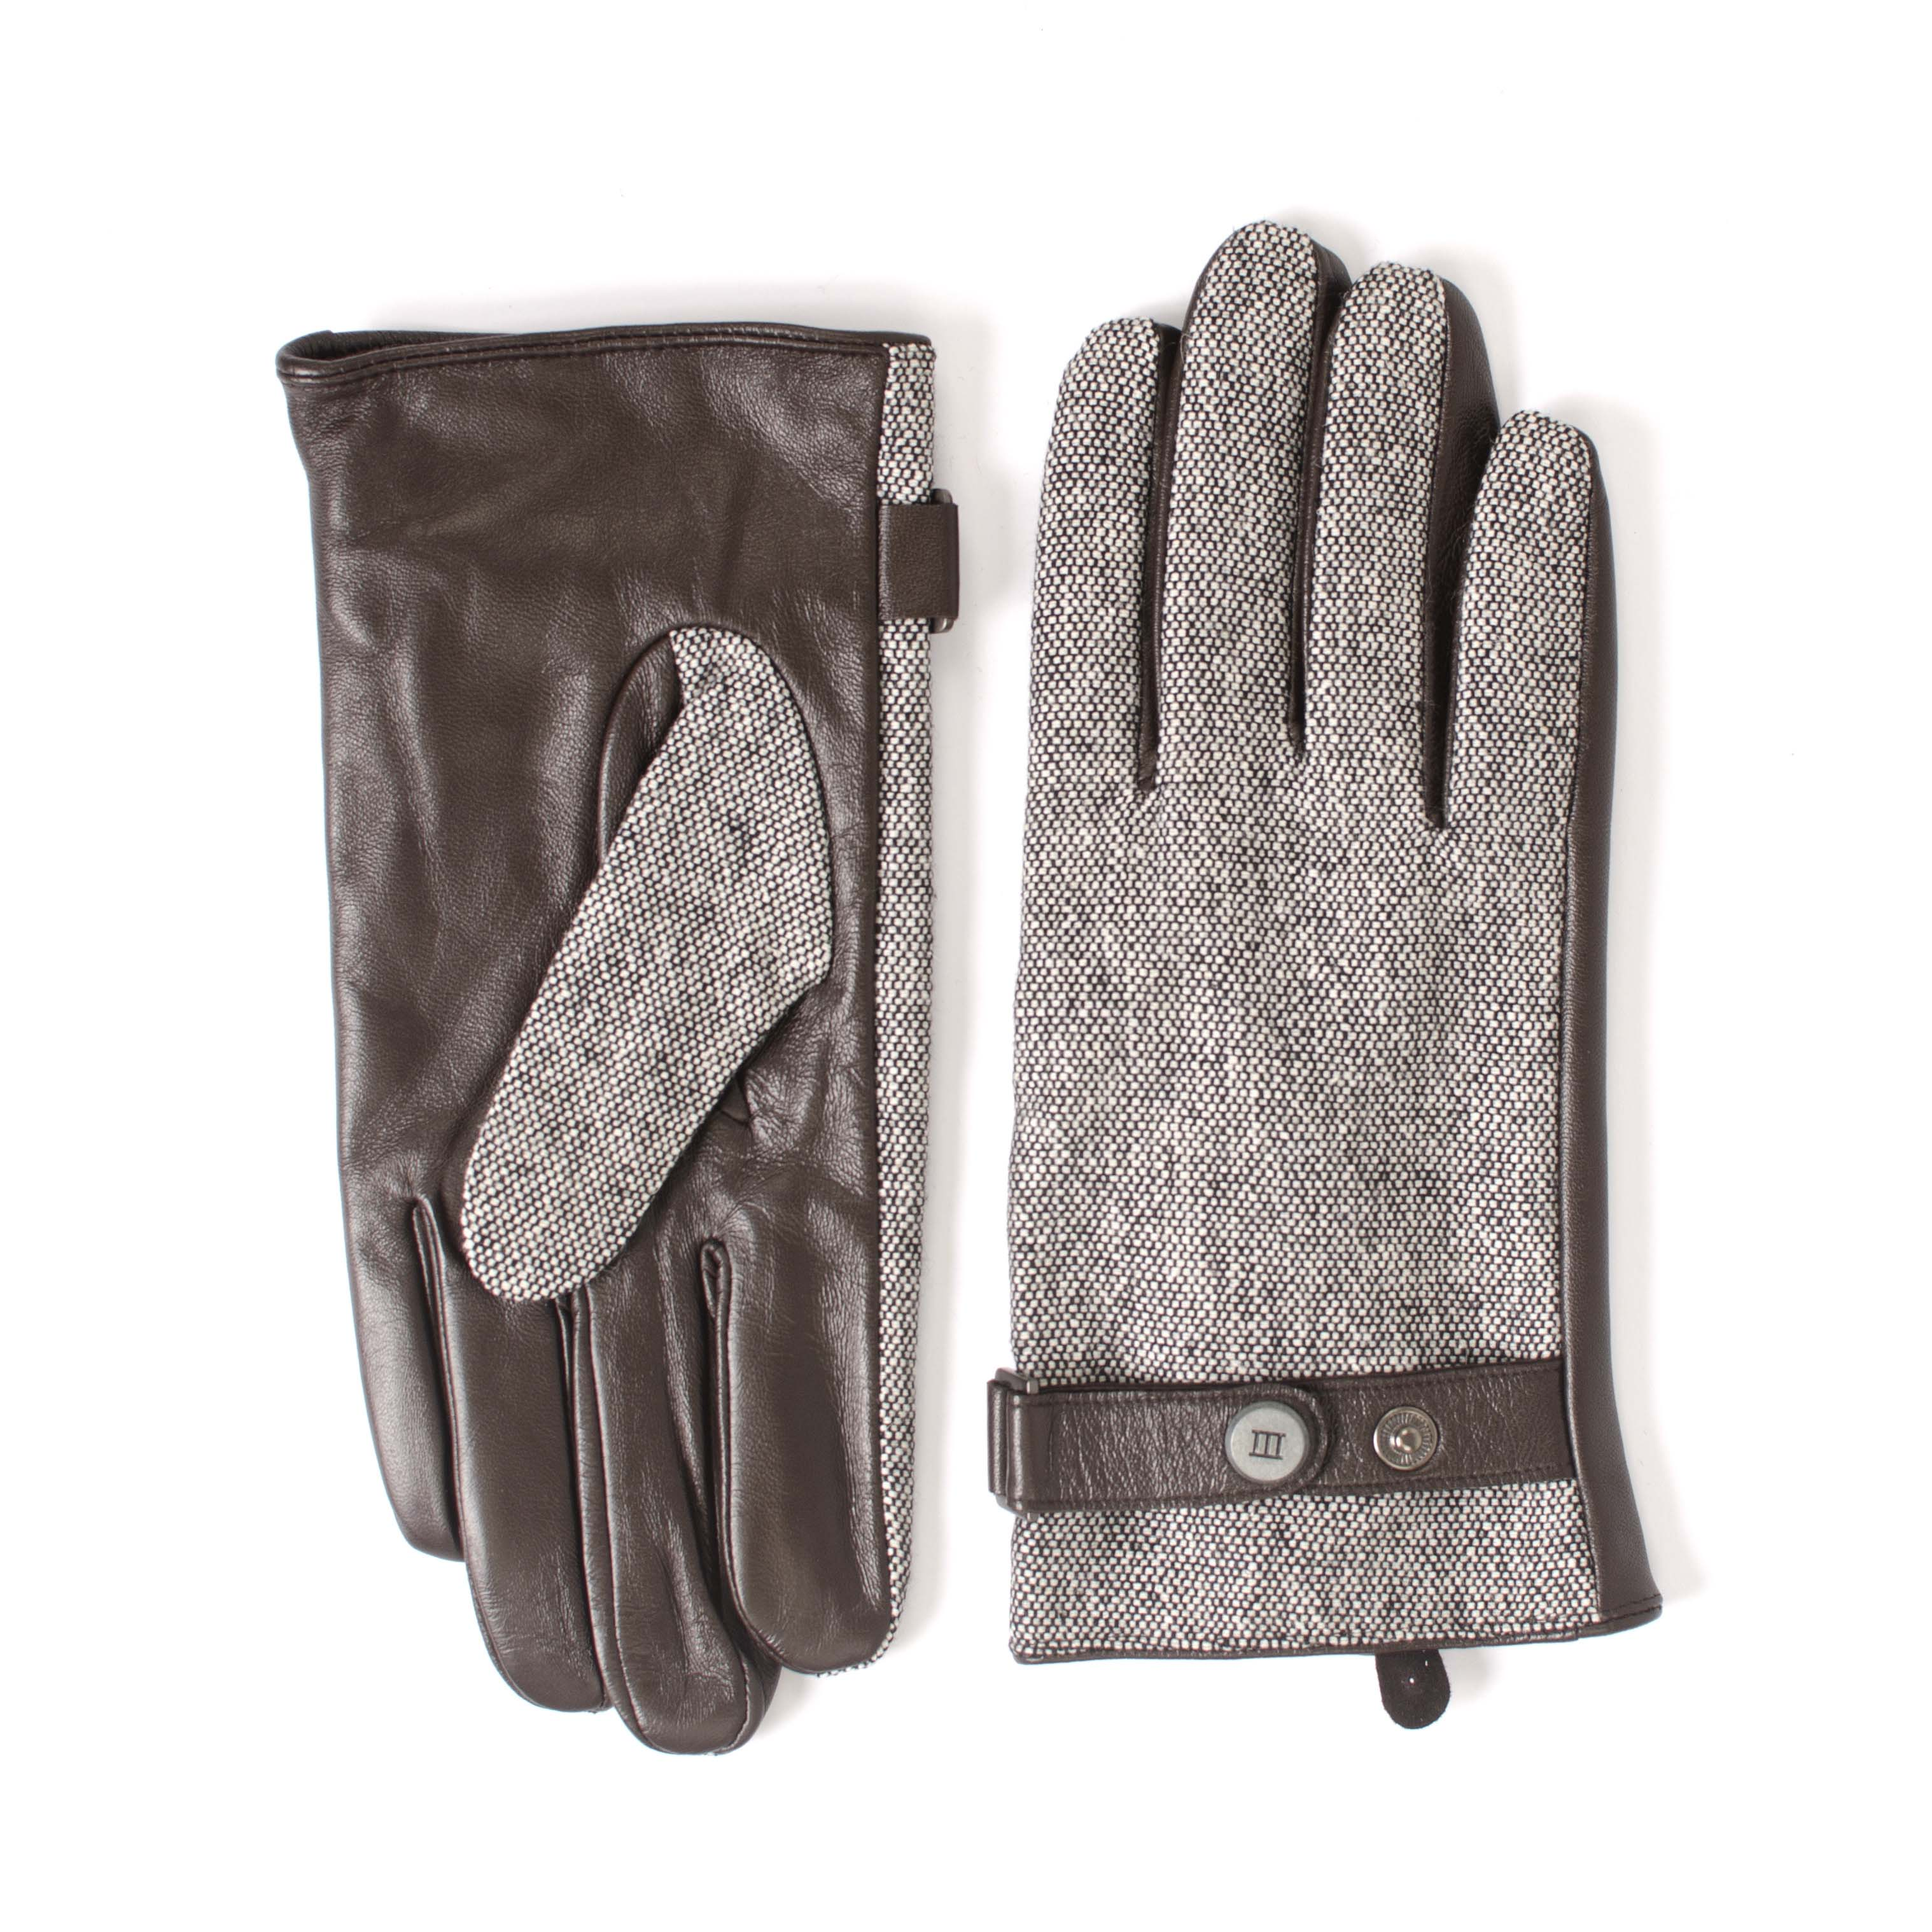 Jowen | Gloves brown leather with woven part